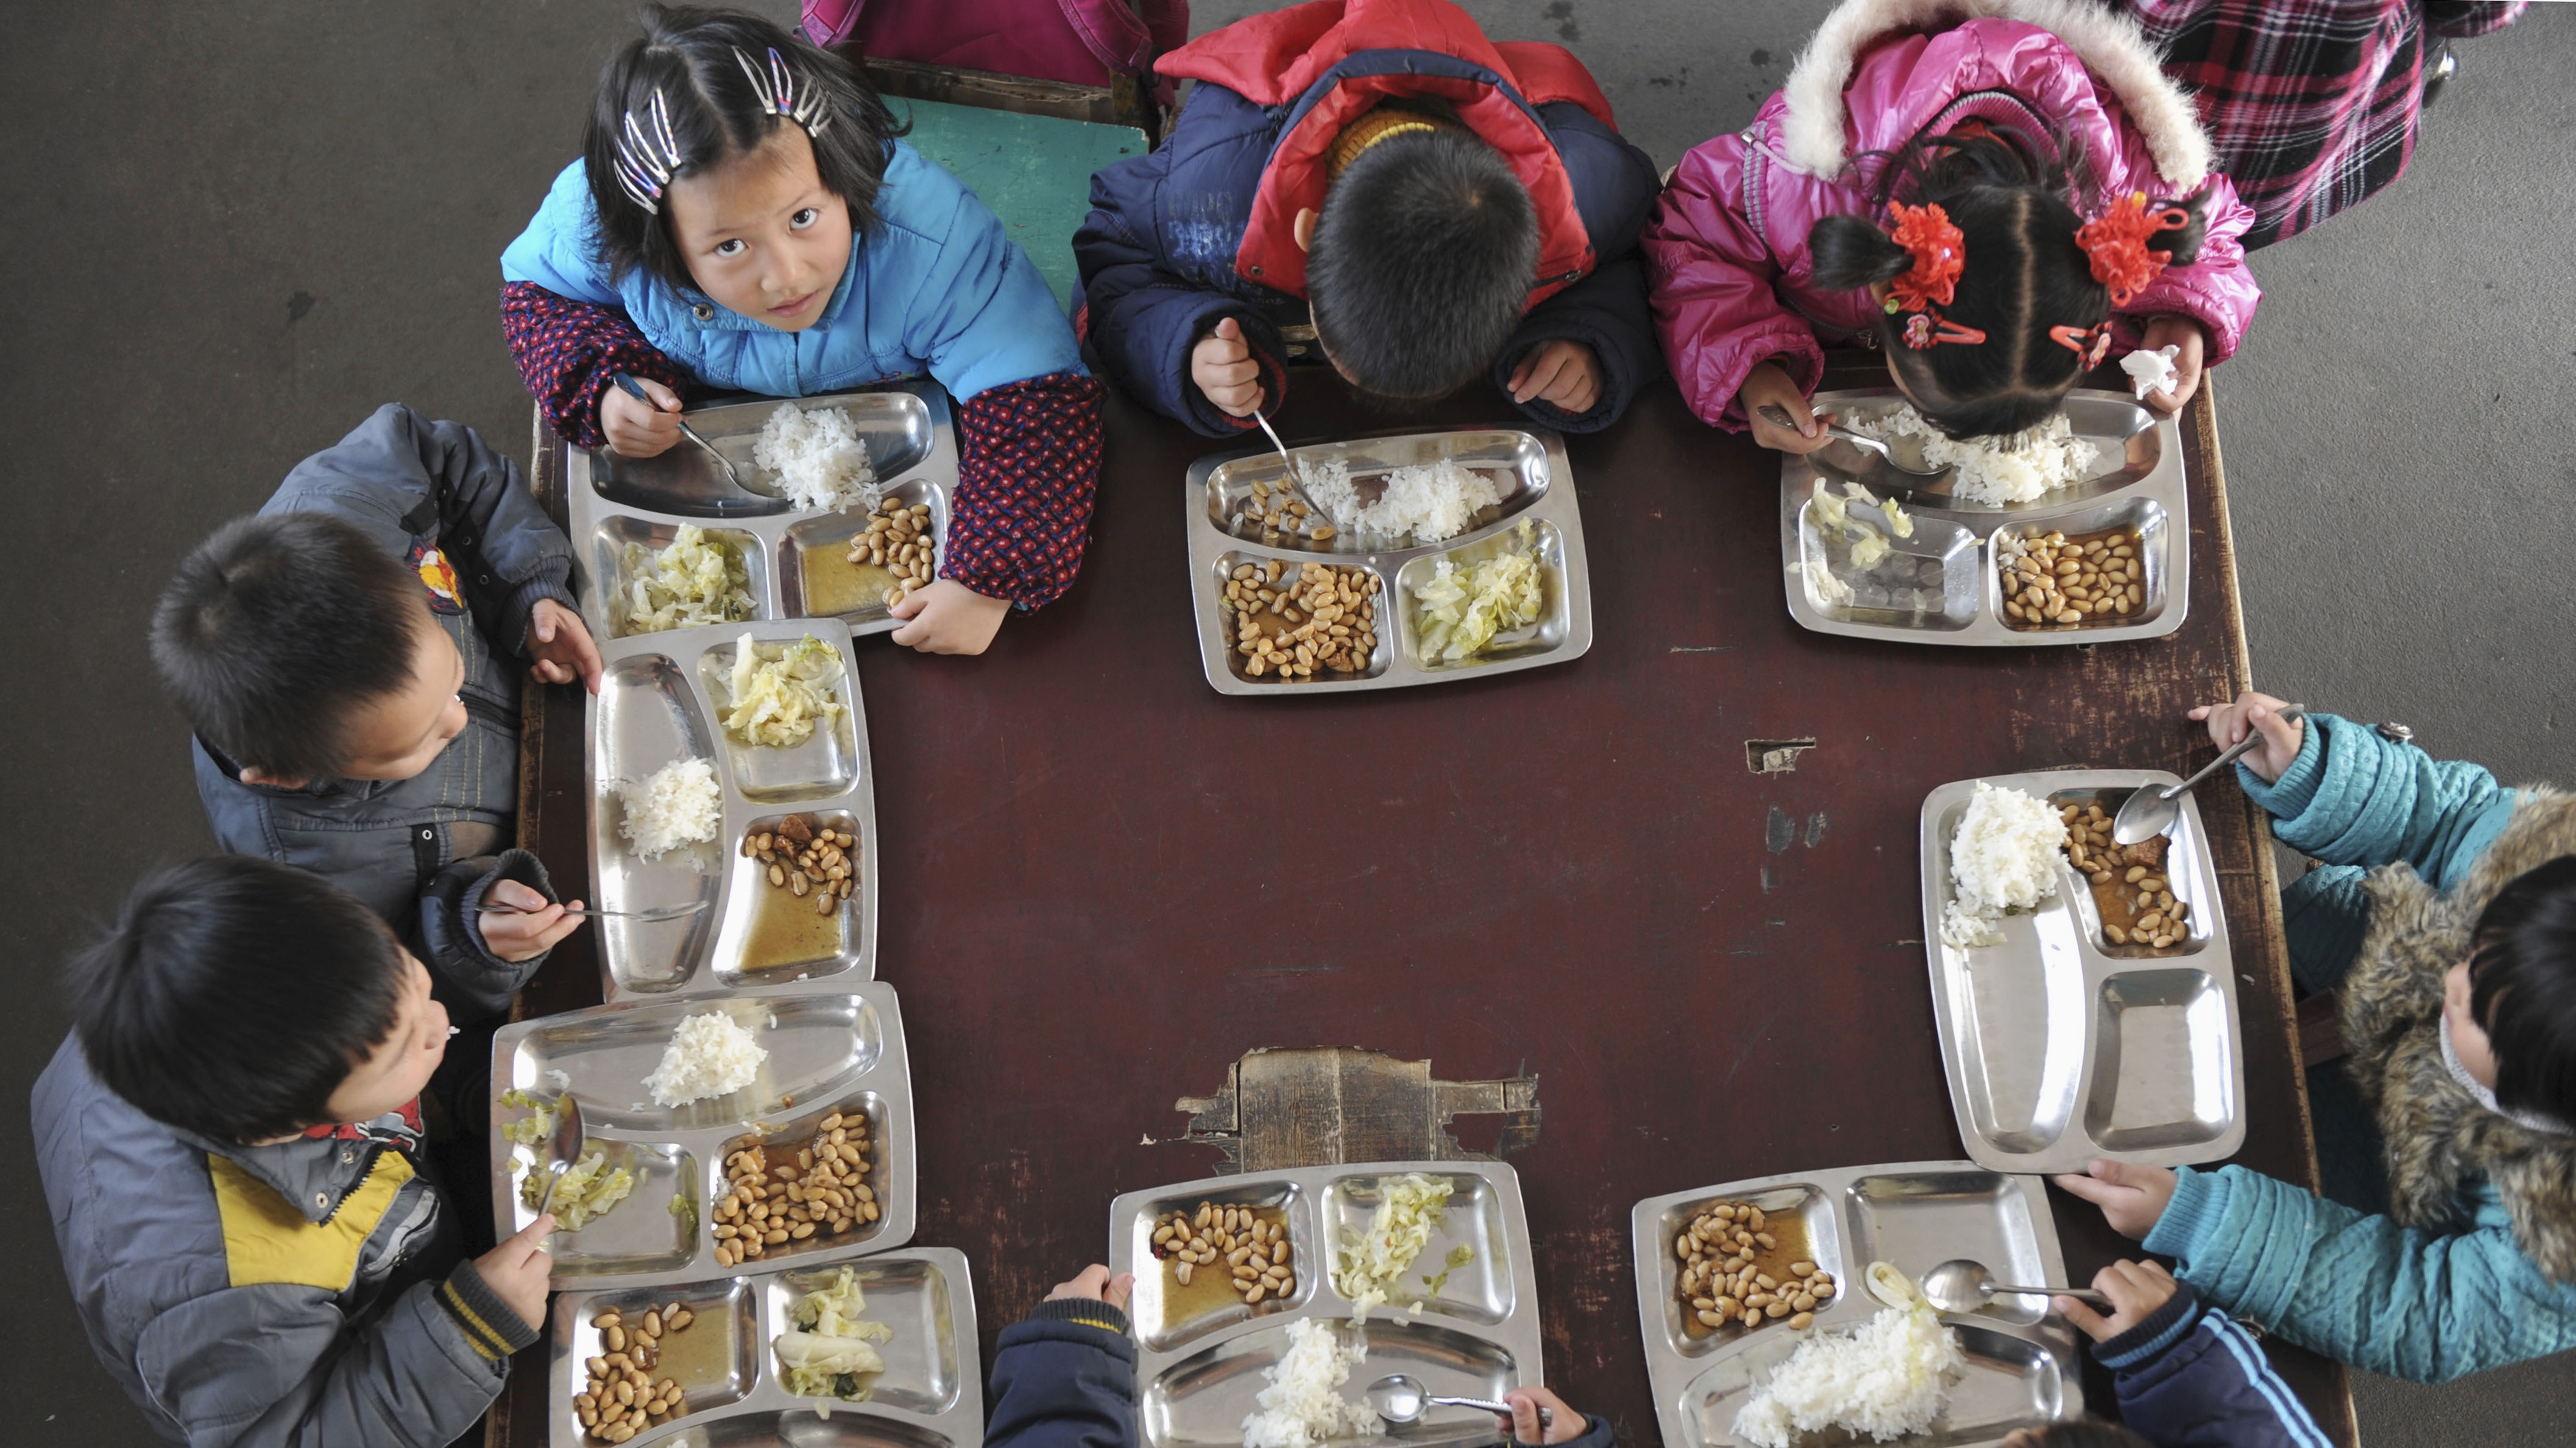 """Children have lunch in their classroom at a kindergarten in Jiaxing, Zhejiang province December 21, 2010. Preschools are the """"weakest"""" part of China's education system, according to the Chinese government which says it will generally improve the country's kindergartens to ensure a quality start for children, Xinhua News Agency reported. REUTERS/Stringer (CHINA - Tags: EDUCATION POLITICS) CHINA OUT. NO COMMERCIAL OR EDITORIAL SALES IN CHINA - RTXVXC5"""